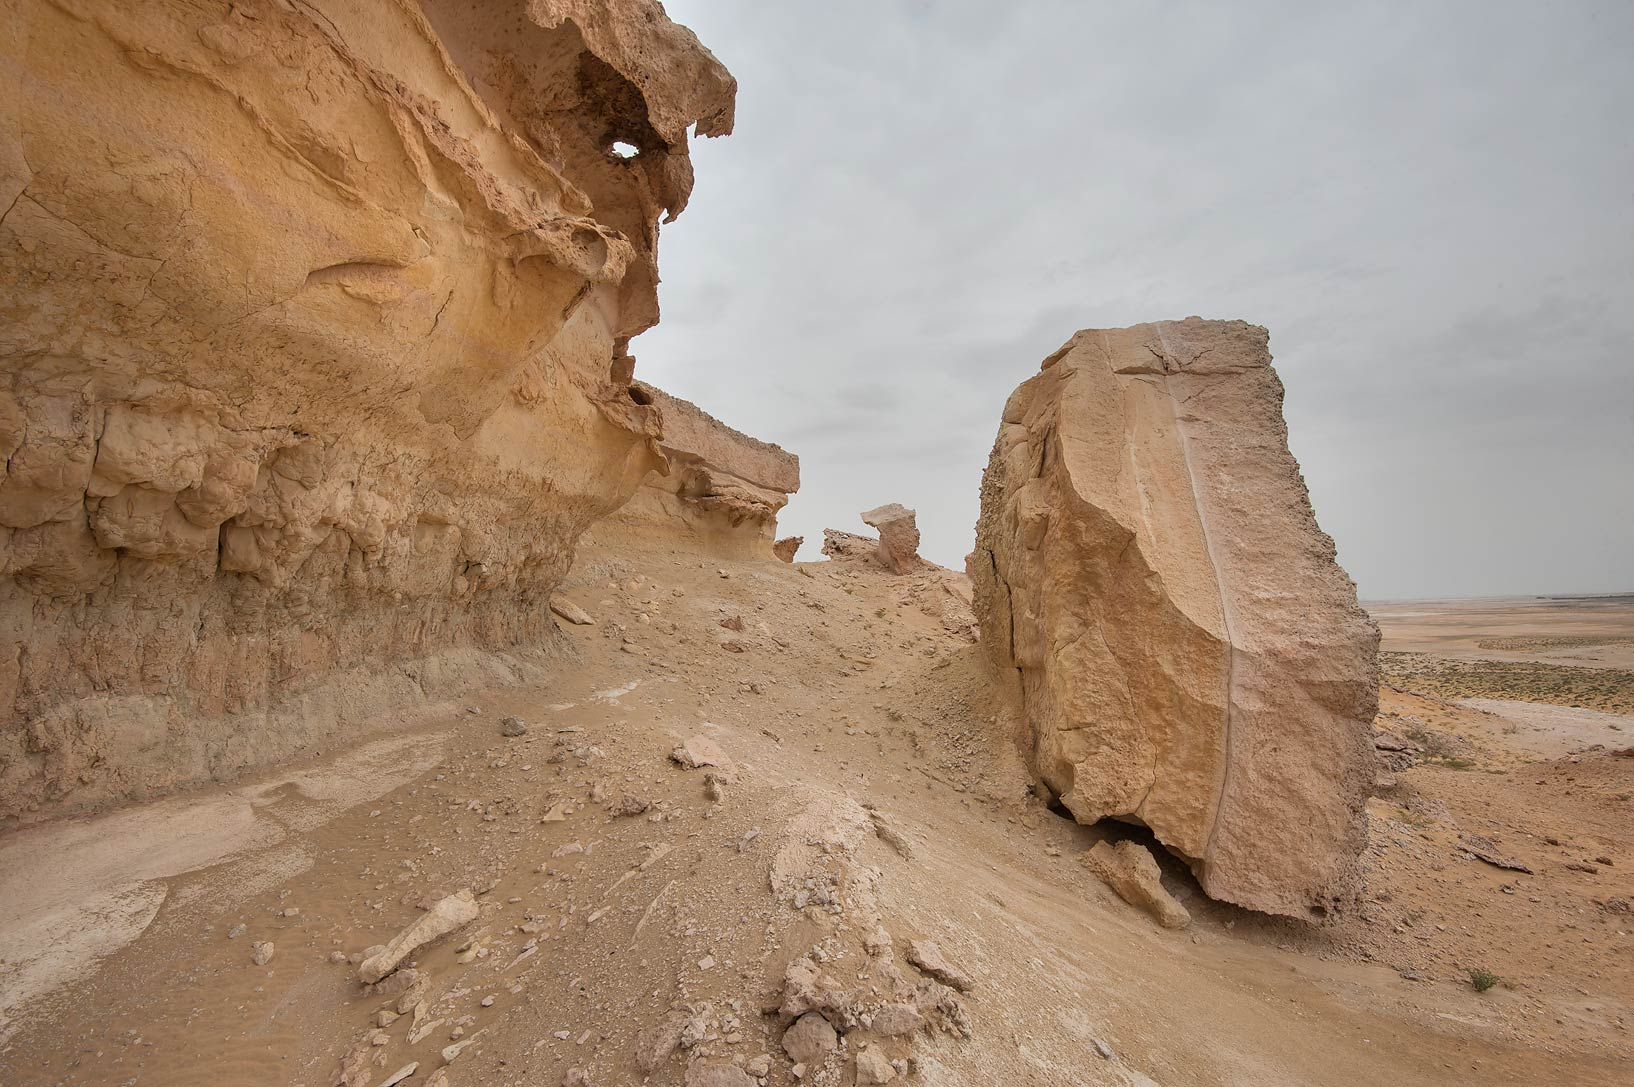 Large detached part of limestone cliffs in...Reserve near Abu Samra. Southern Qatar